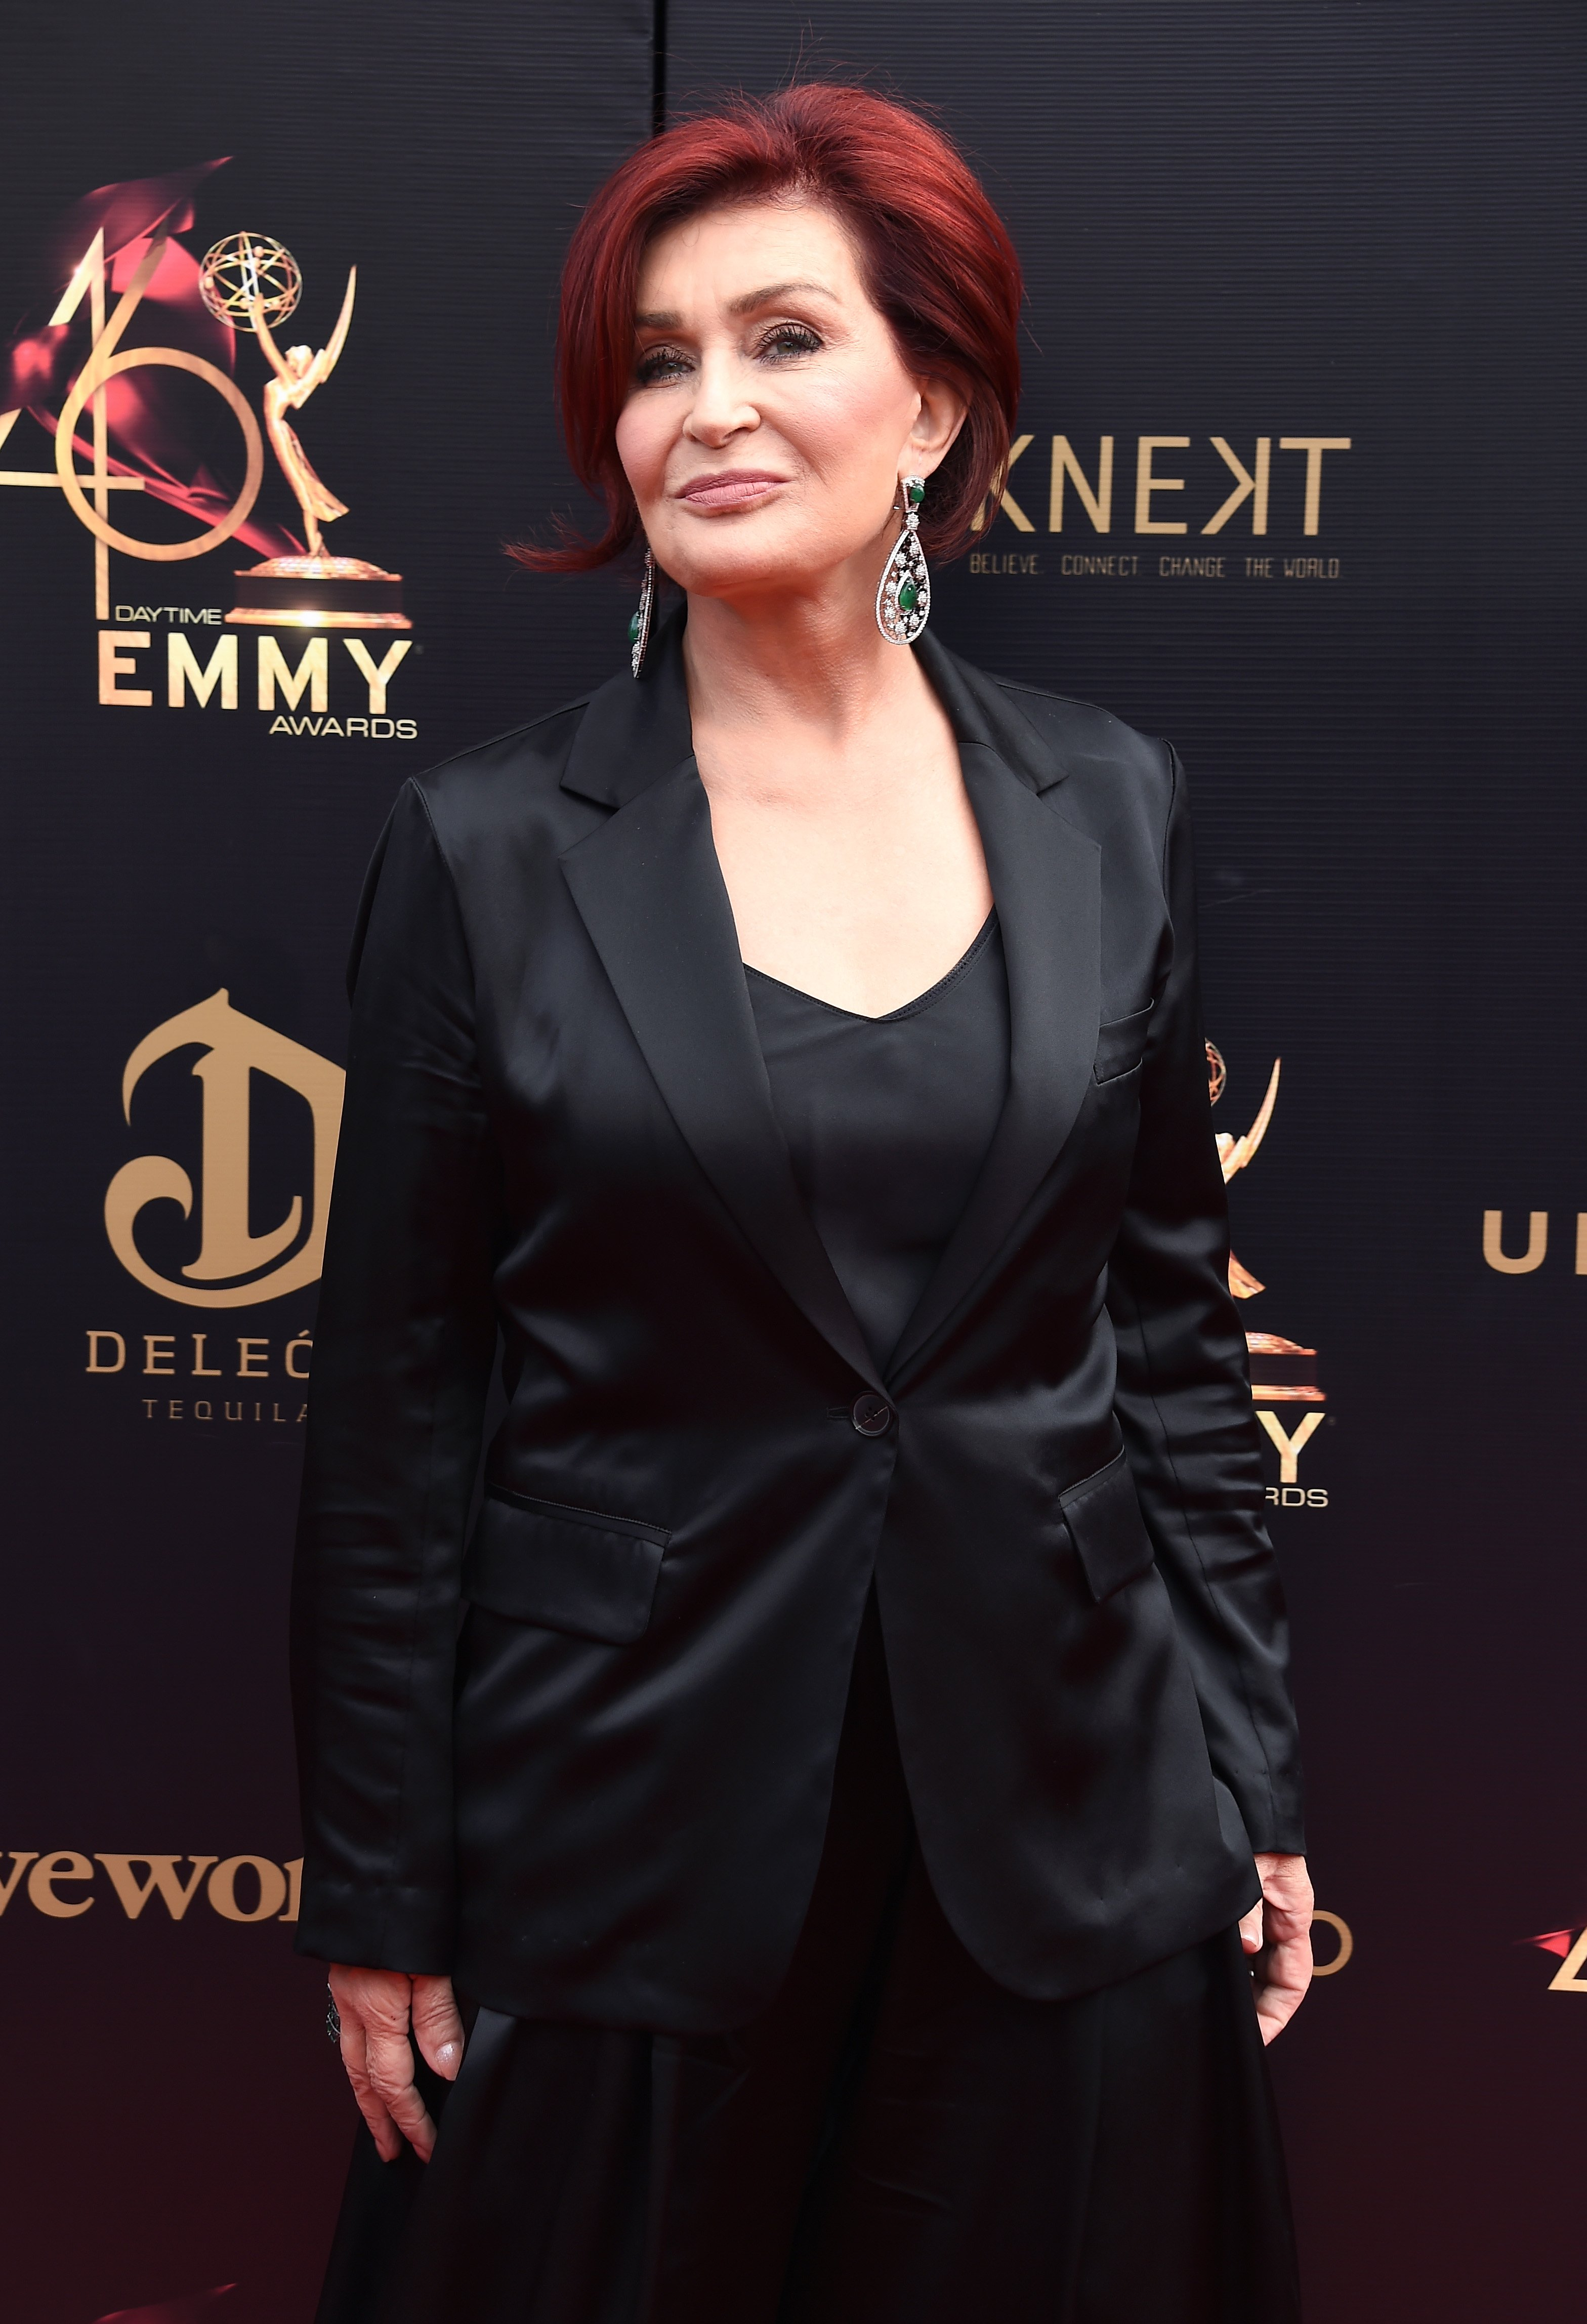 Sharon Osbourne attends the 46th annual Daytime Emmy Awards at Pasadena Civic Center on May 05, 2019 in Pasadena, California | Photo: Getty Images